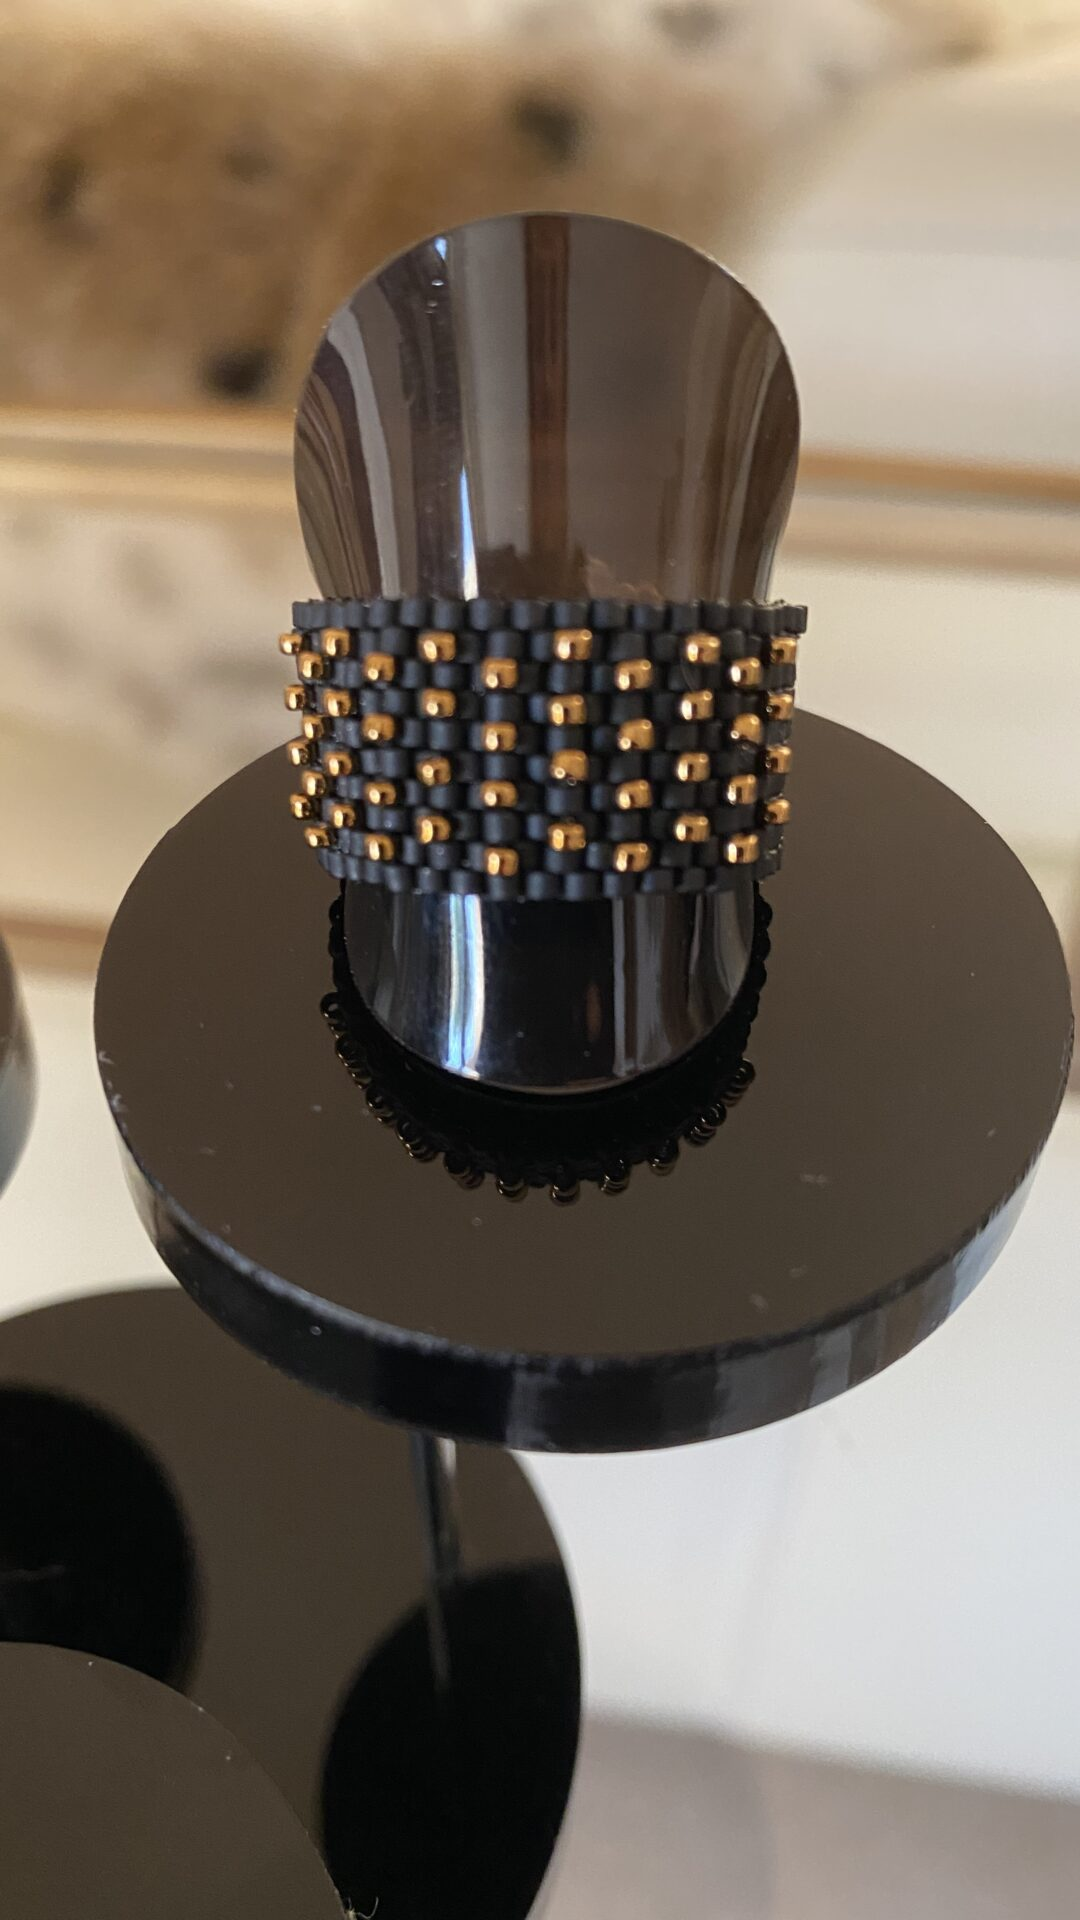 Japanese Seed Bead Handwoven Ring Black And Rose Gold Accents Size US 9 By Covet And Desire